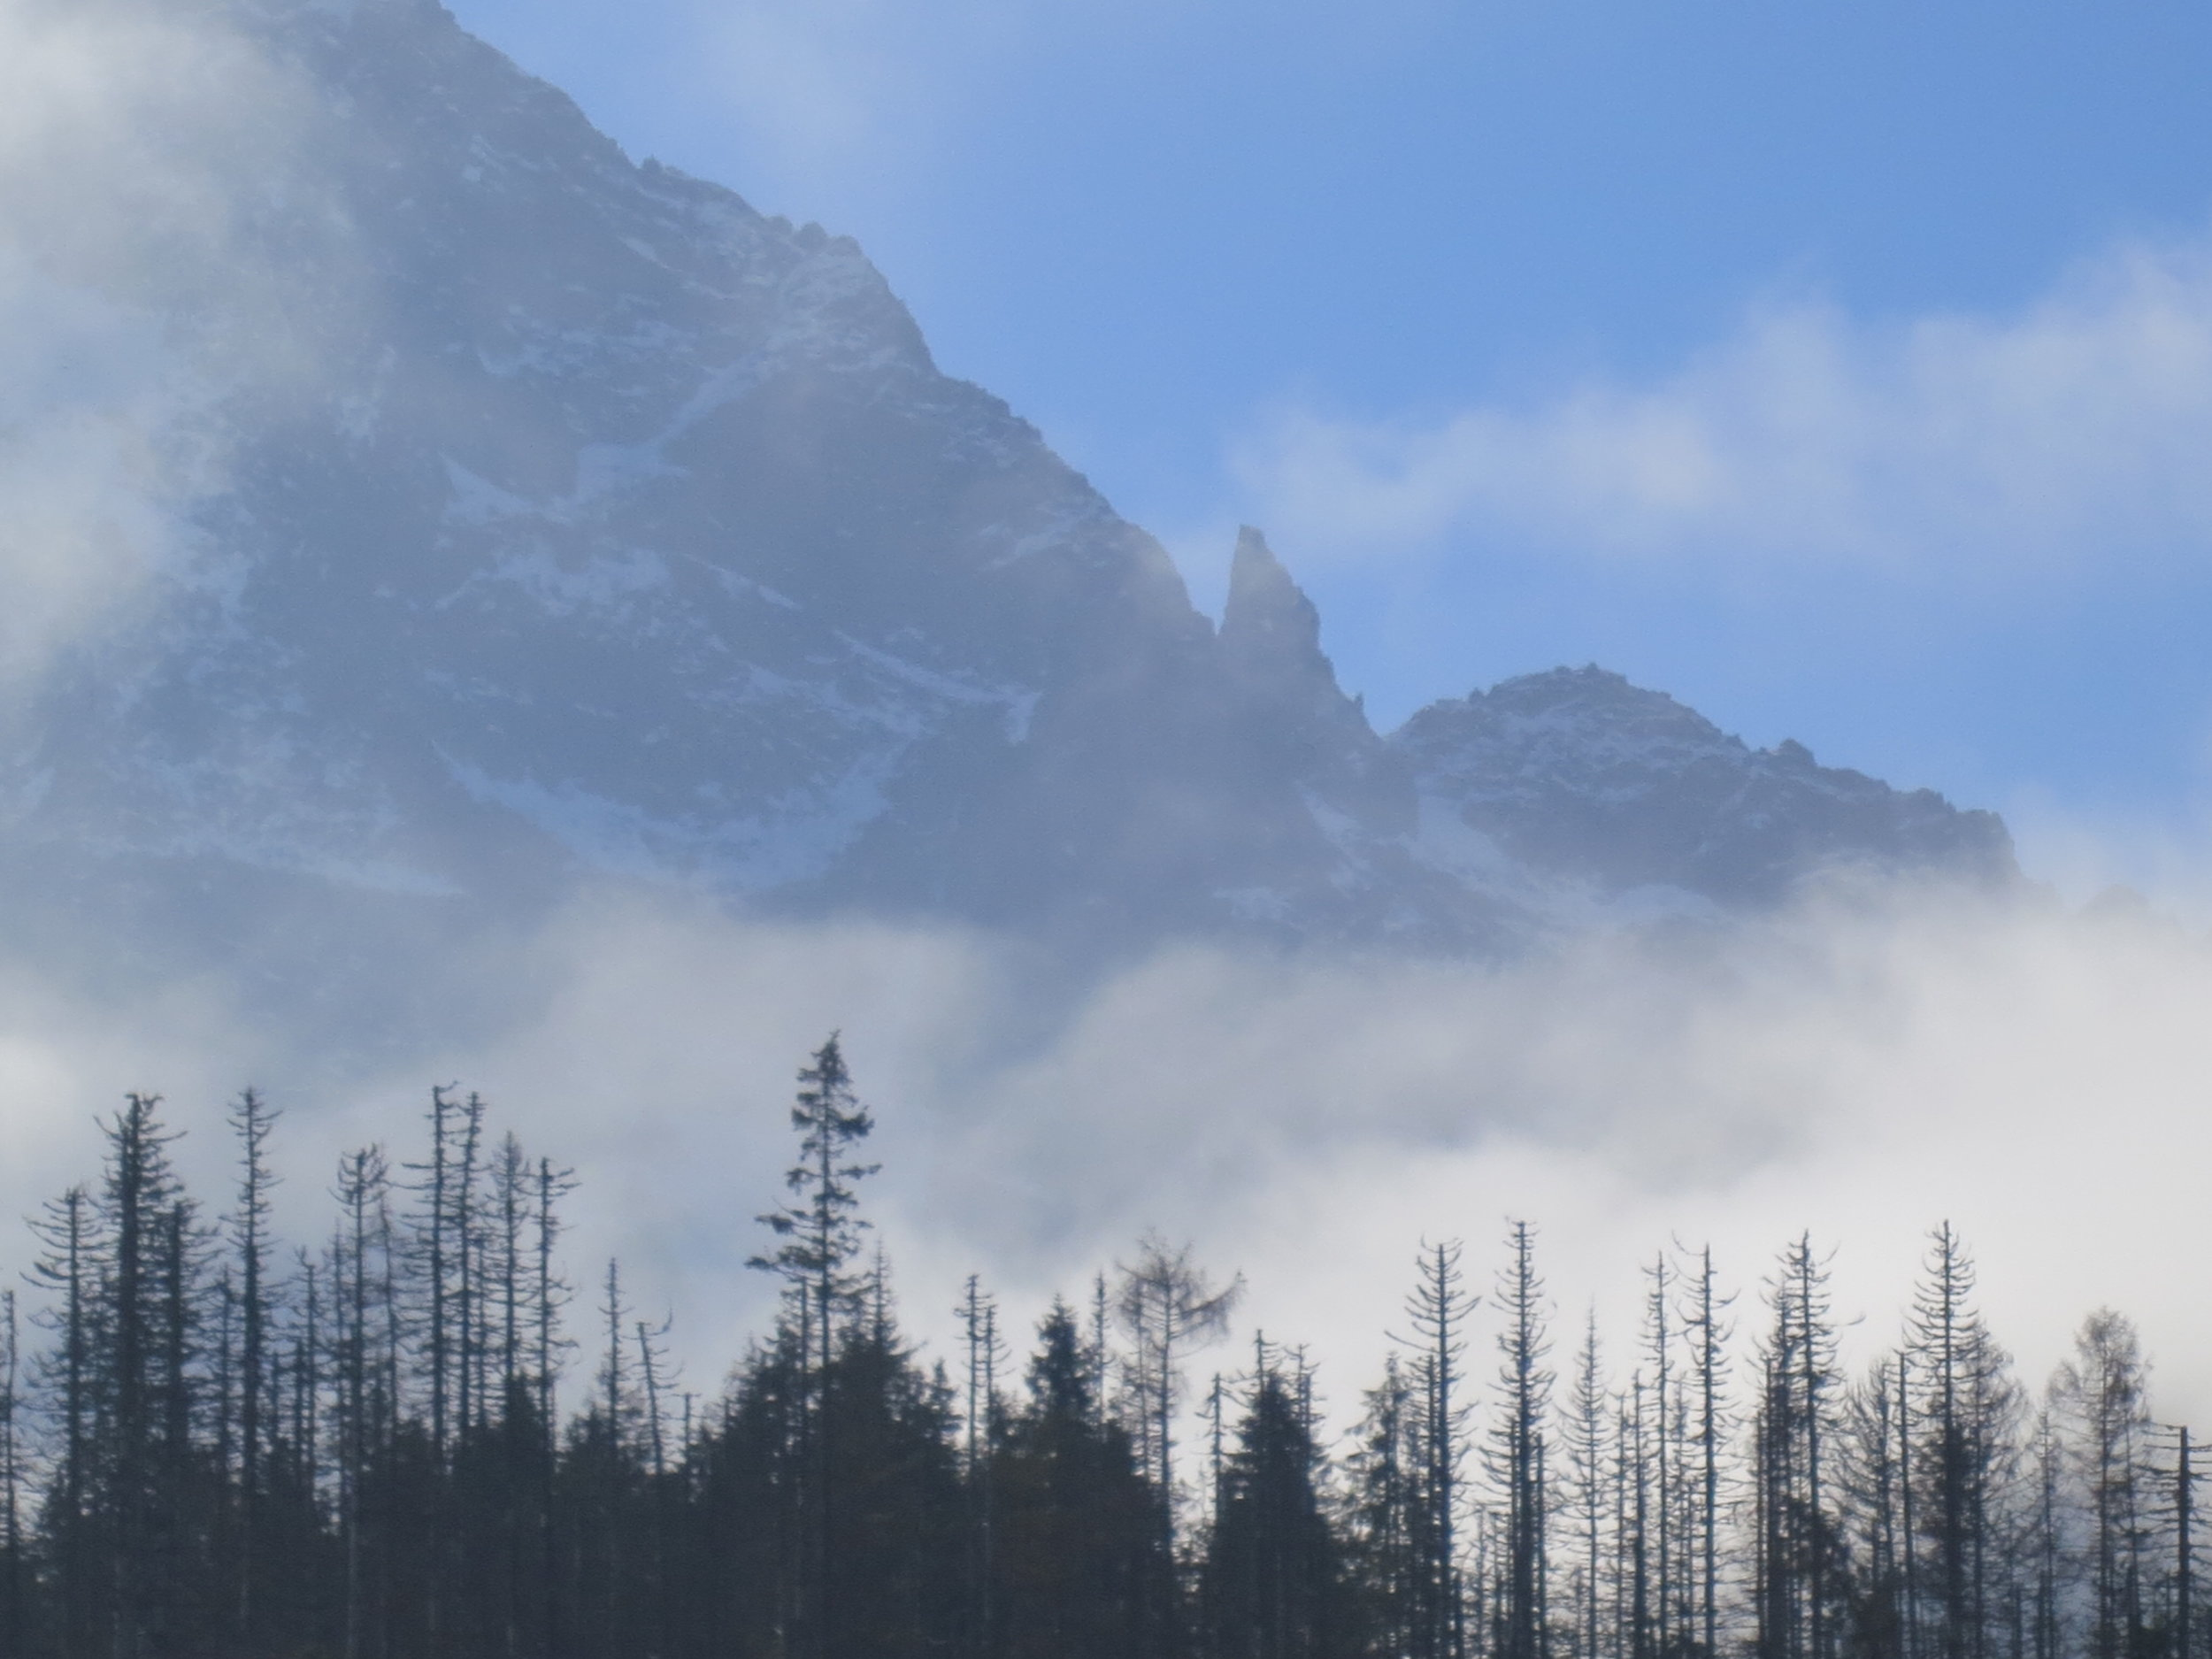 Fog obscures the Tatra Mountains in Southern Poland.